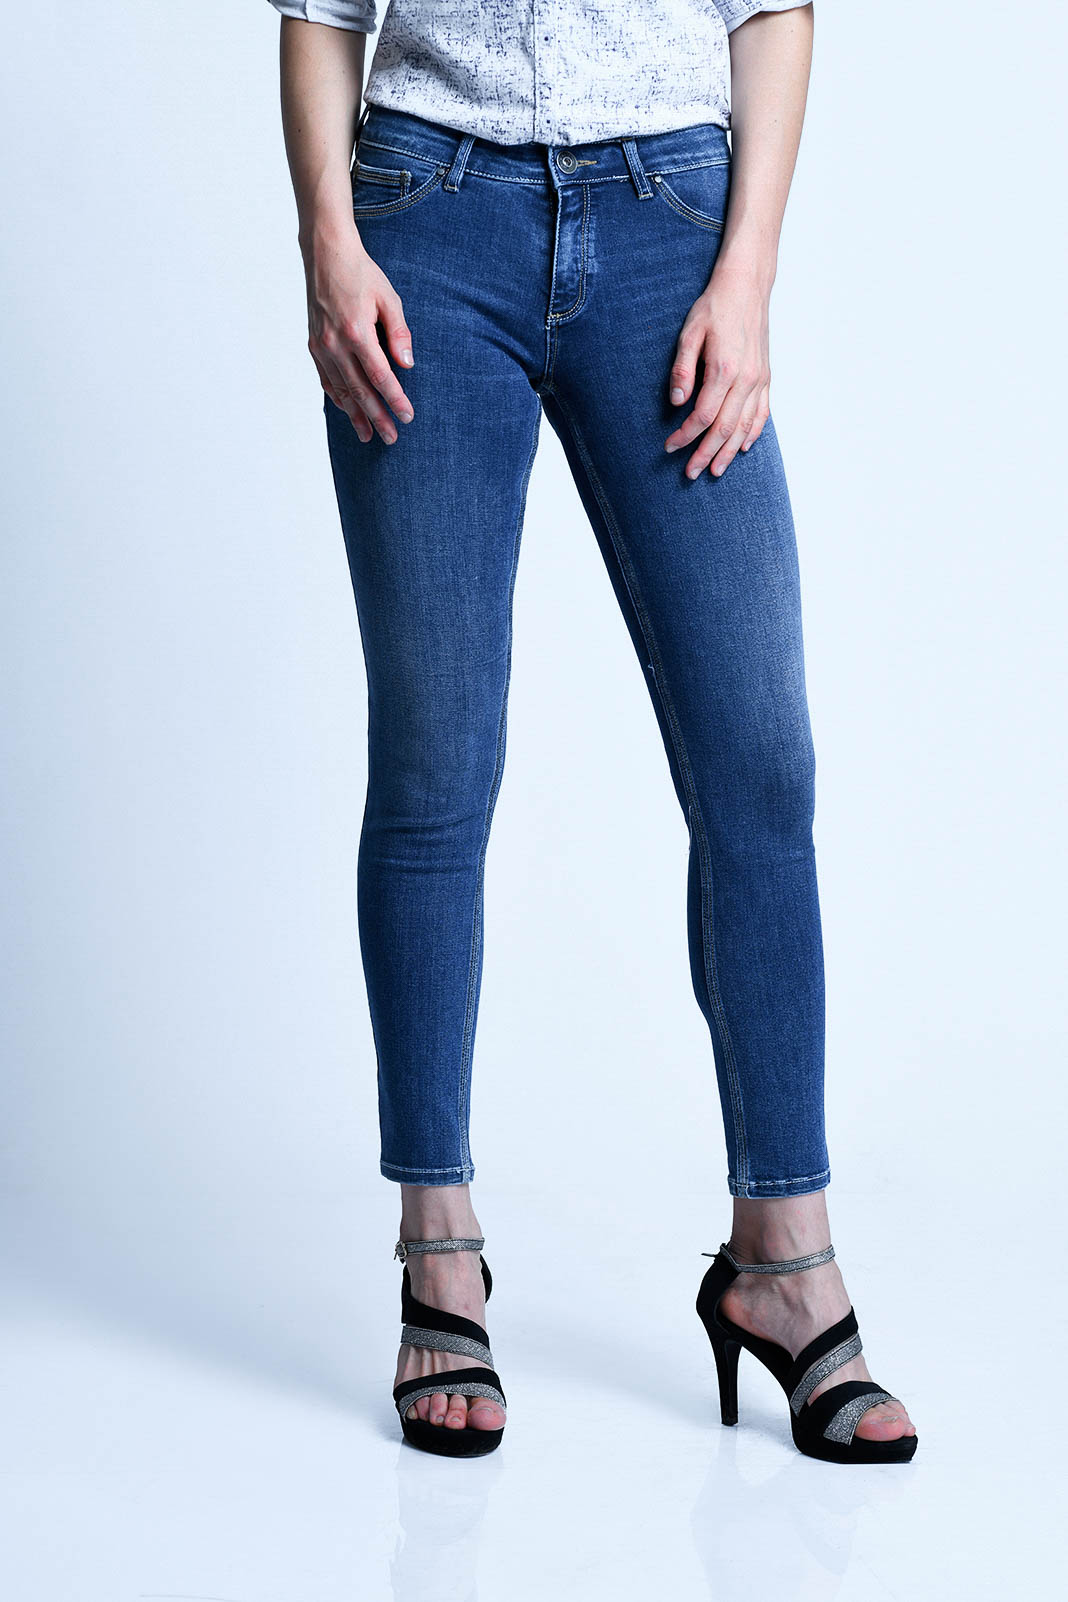 CARDINAL GIRL CELANA JEANS 6 (INDIGO LIGHT)